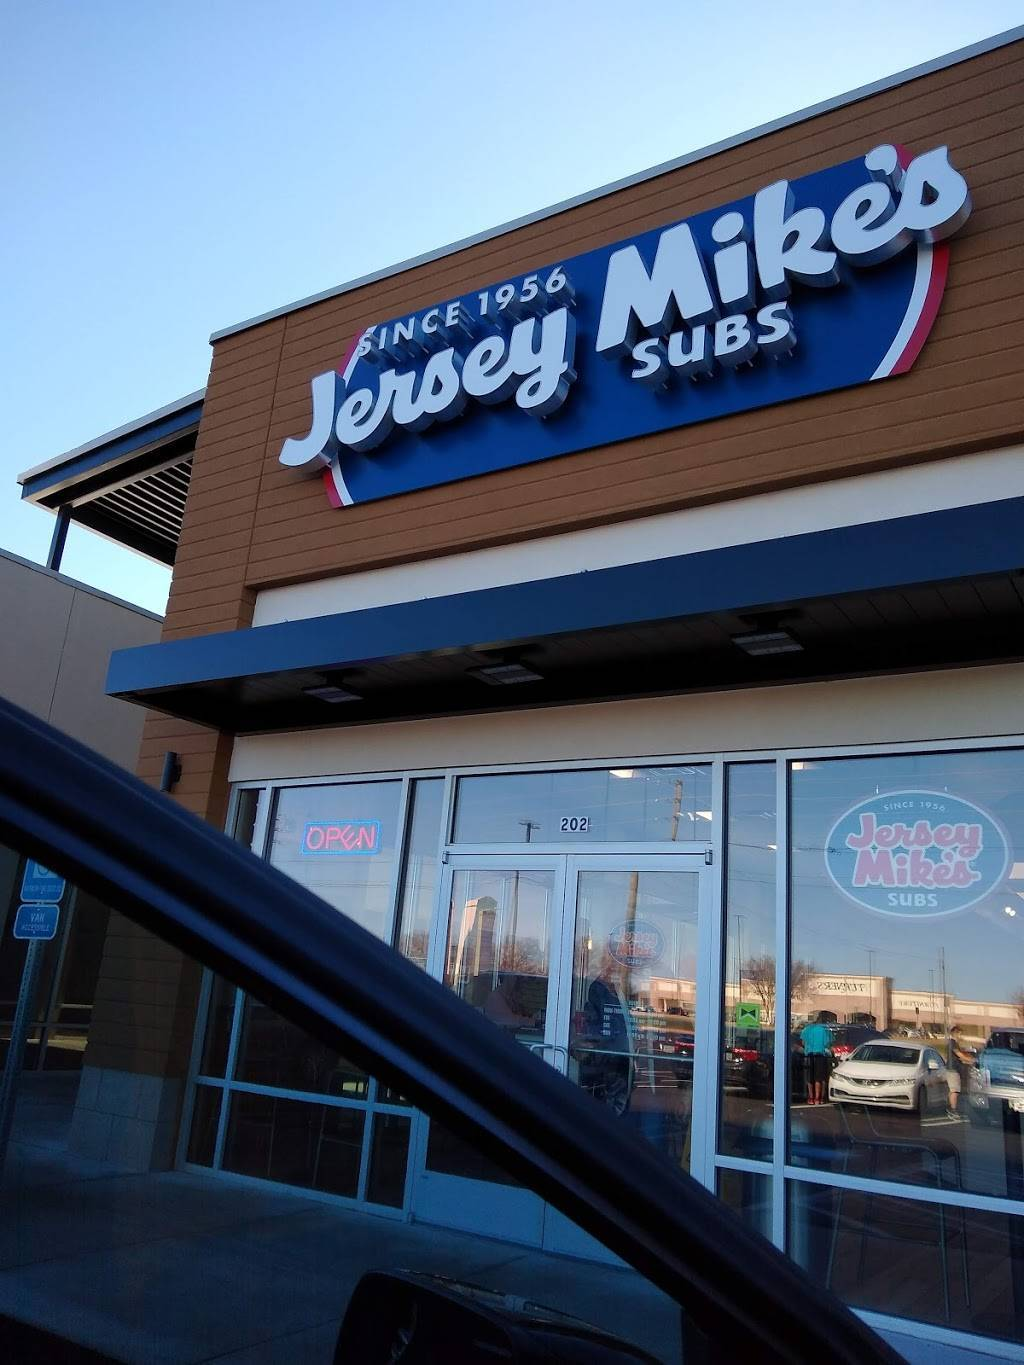 Jersey Mikes Subs | meal takeaway | 794 GA-96 Suite 202, Bonaire, GA 31005, USA | 4783135482 OR +1 478-313-5482